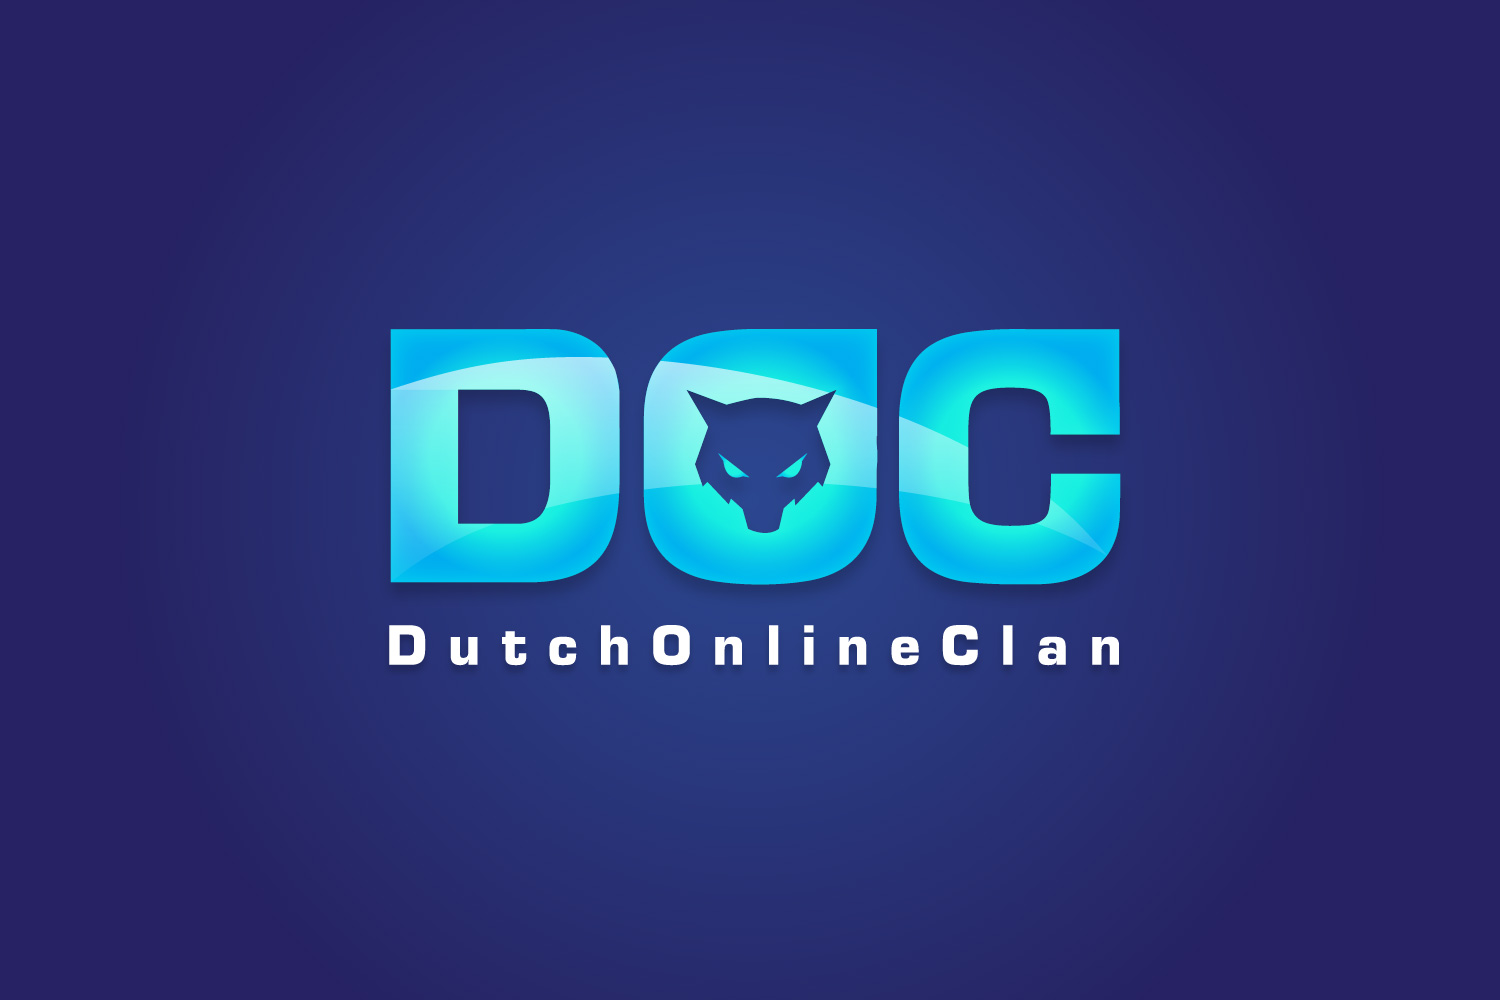 Dutch Online Gaming Clan Logo